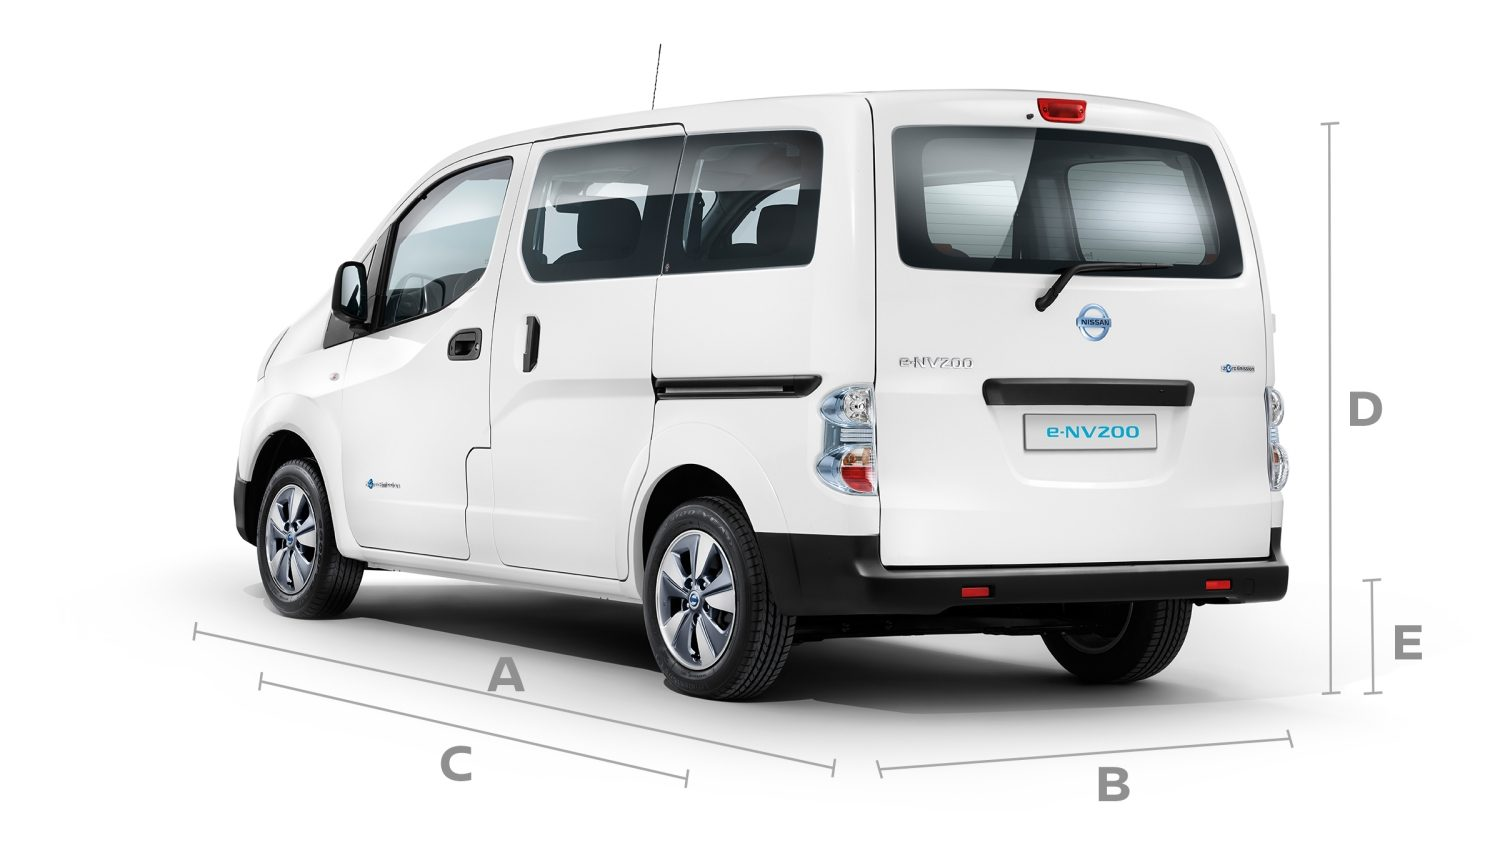 New Nissan e-NV200 Evalia 3/4 rear with lines to show dimensions